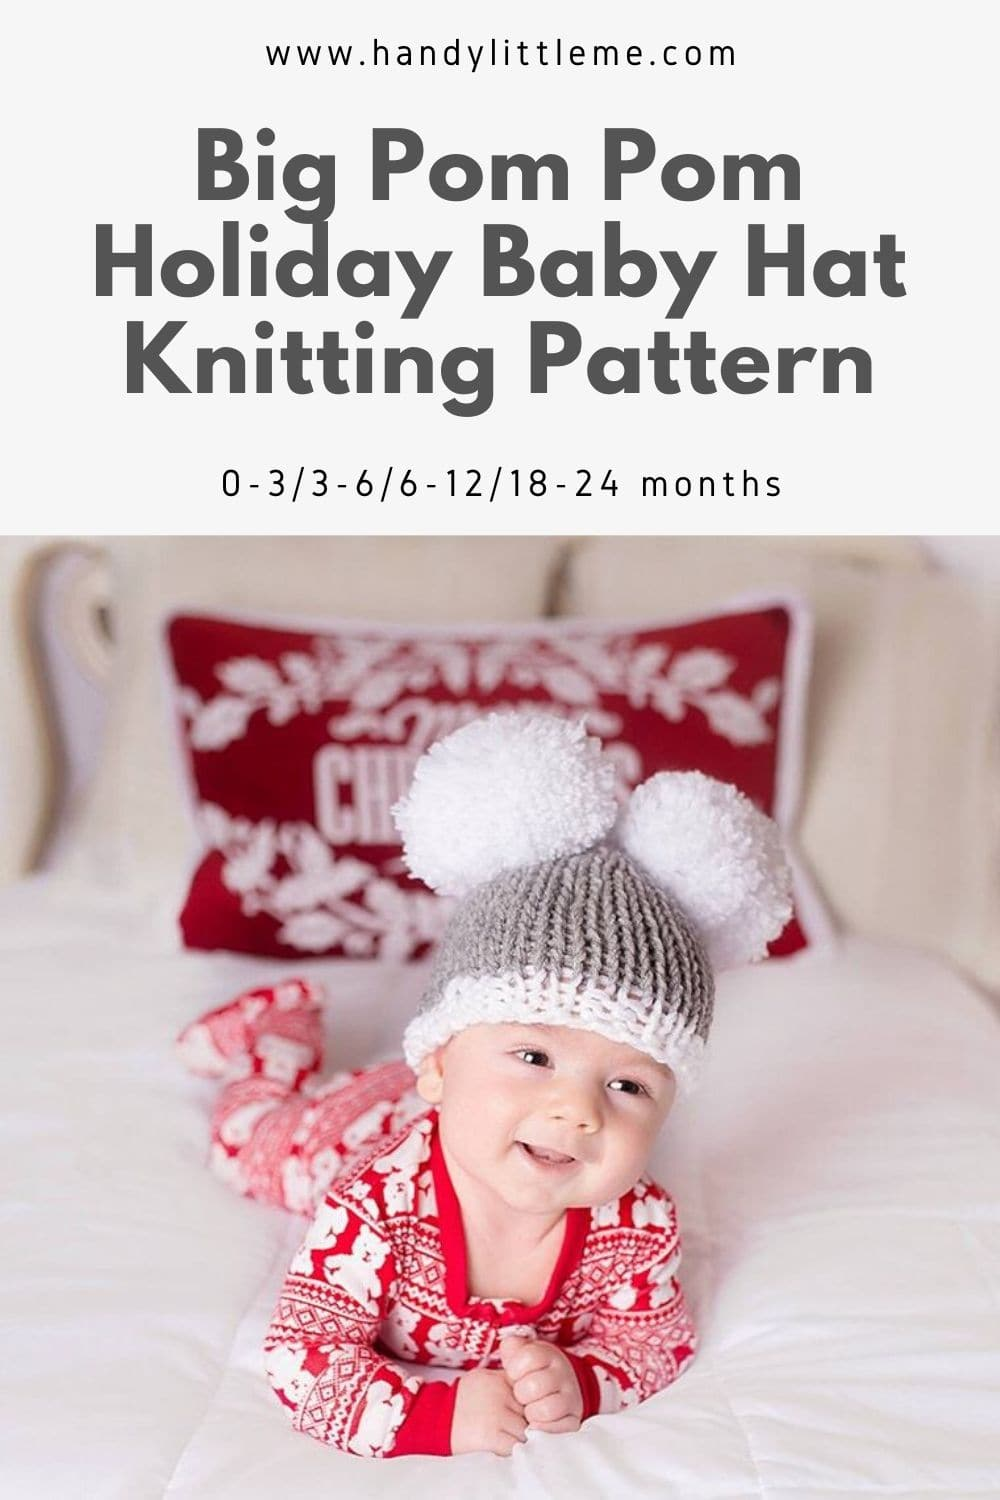 Holiday baby hat knitting pattern